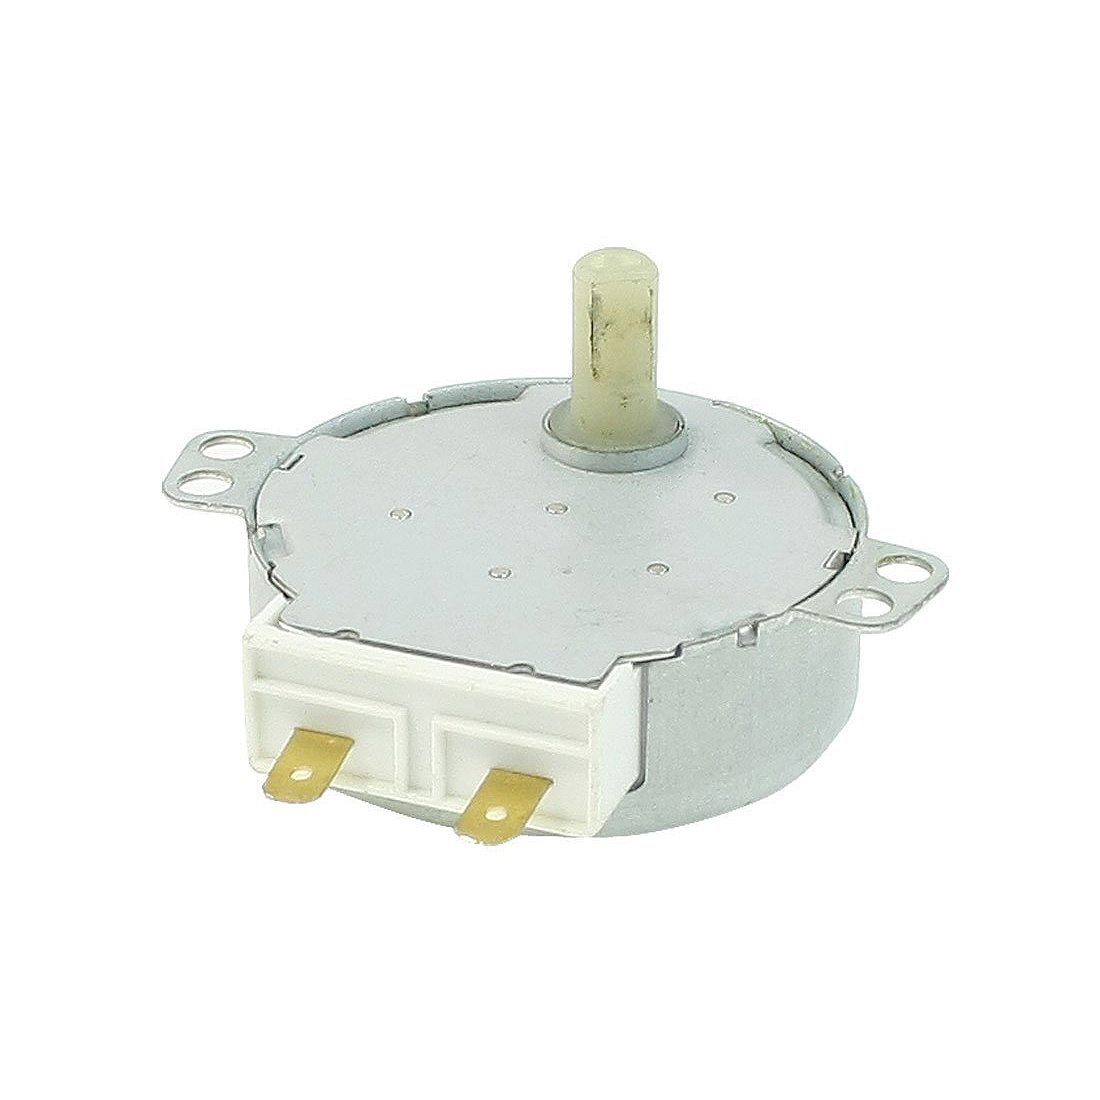 CW / CCW 4 W 5 rpm, microwave oven turntable motor synchronous AC 220 V / 240 V